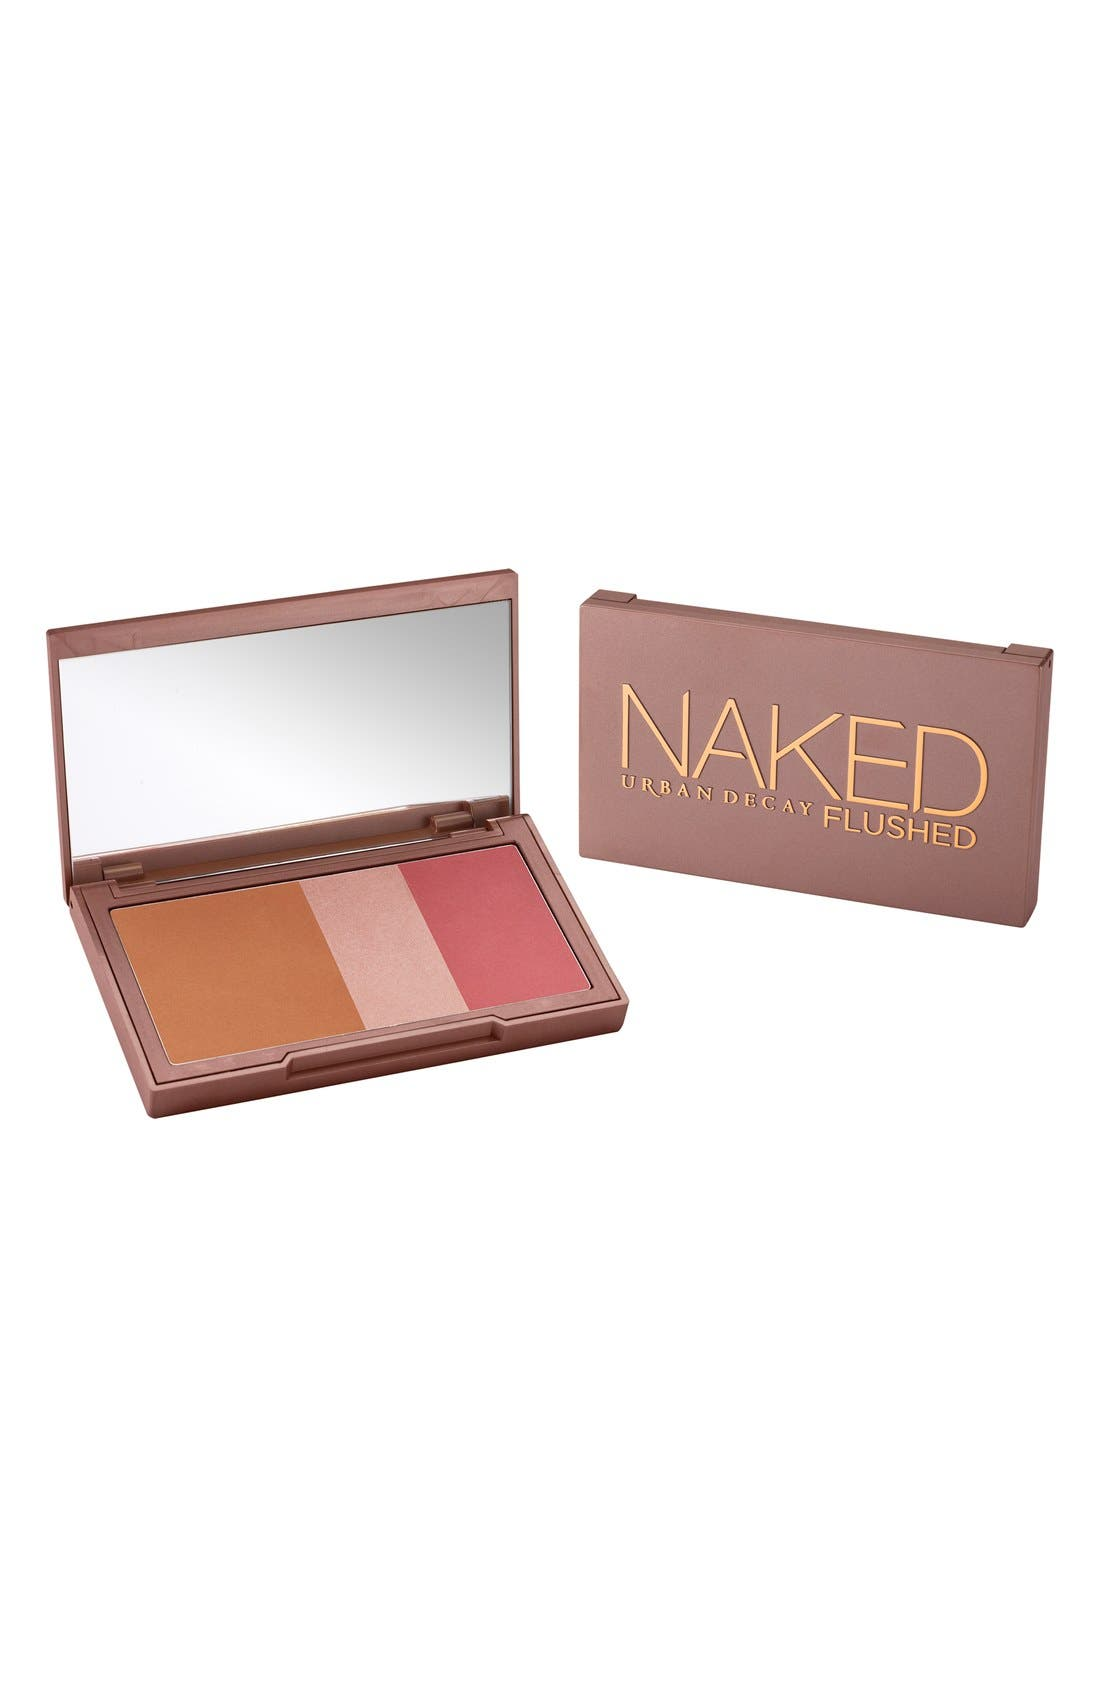 Naked Flushed Bronzer, Highlighter & Blush Palette,                             Alternate thumbnail 5, color,                             NAKED